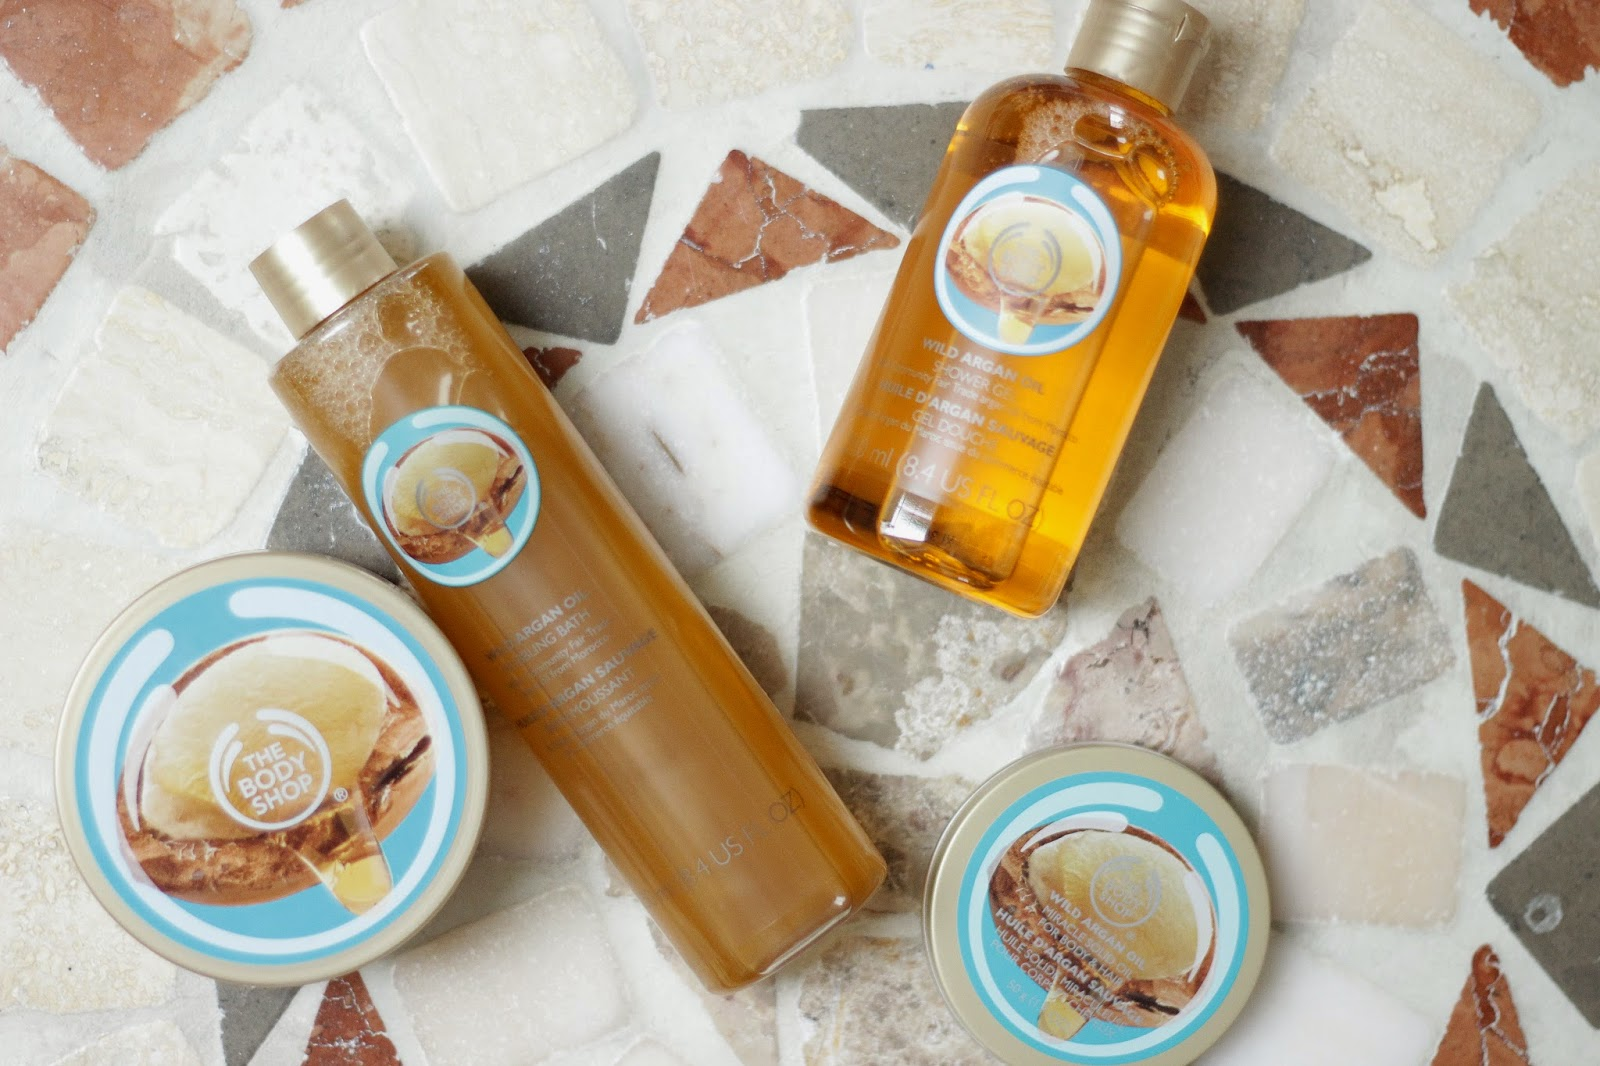 review ervaring the body shop wild argan oil lijn, review ervaring the body shop wild argan oil bubbling bath   miracle solid oil